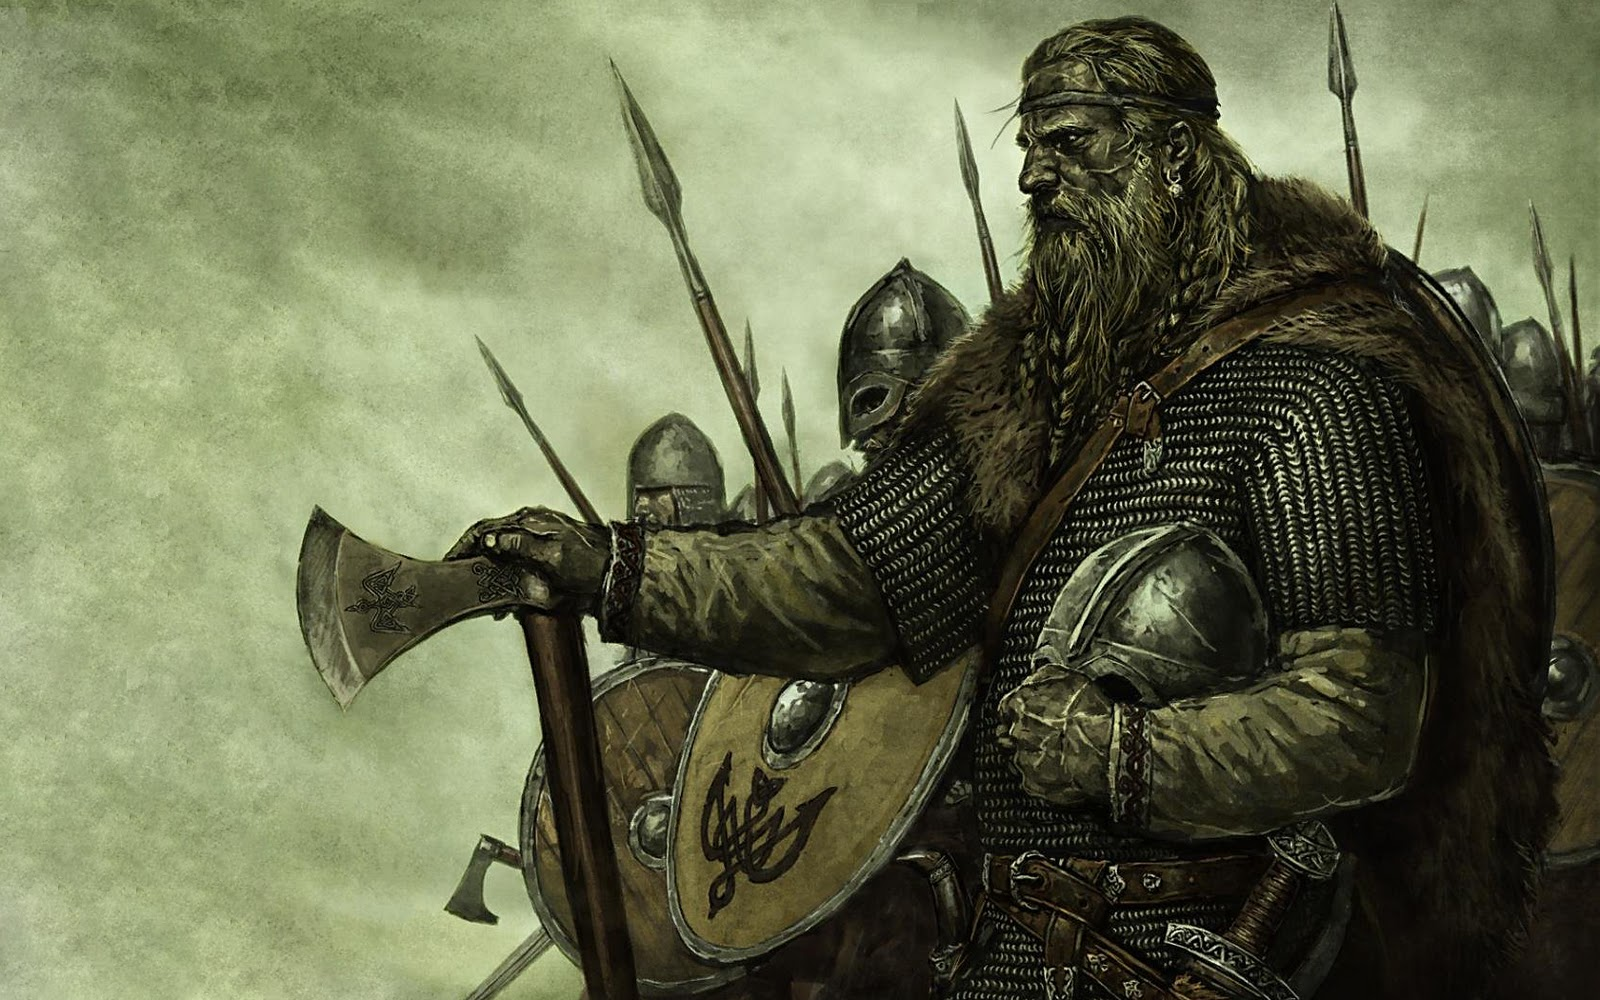 viking-warrior-symbols-wallpaper-2.jpg